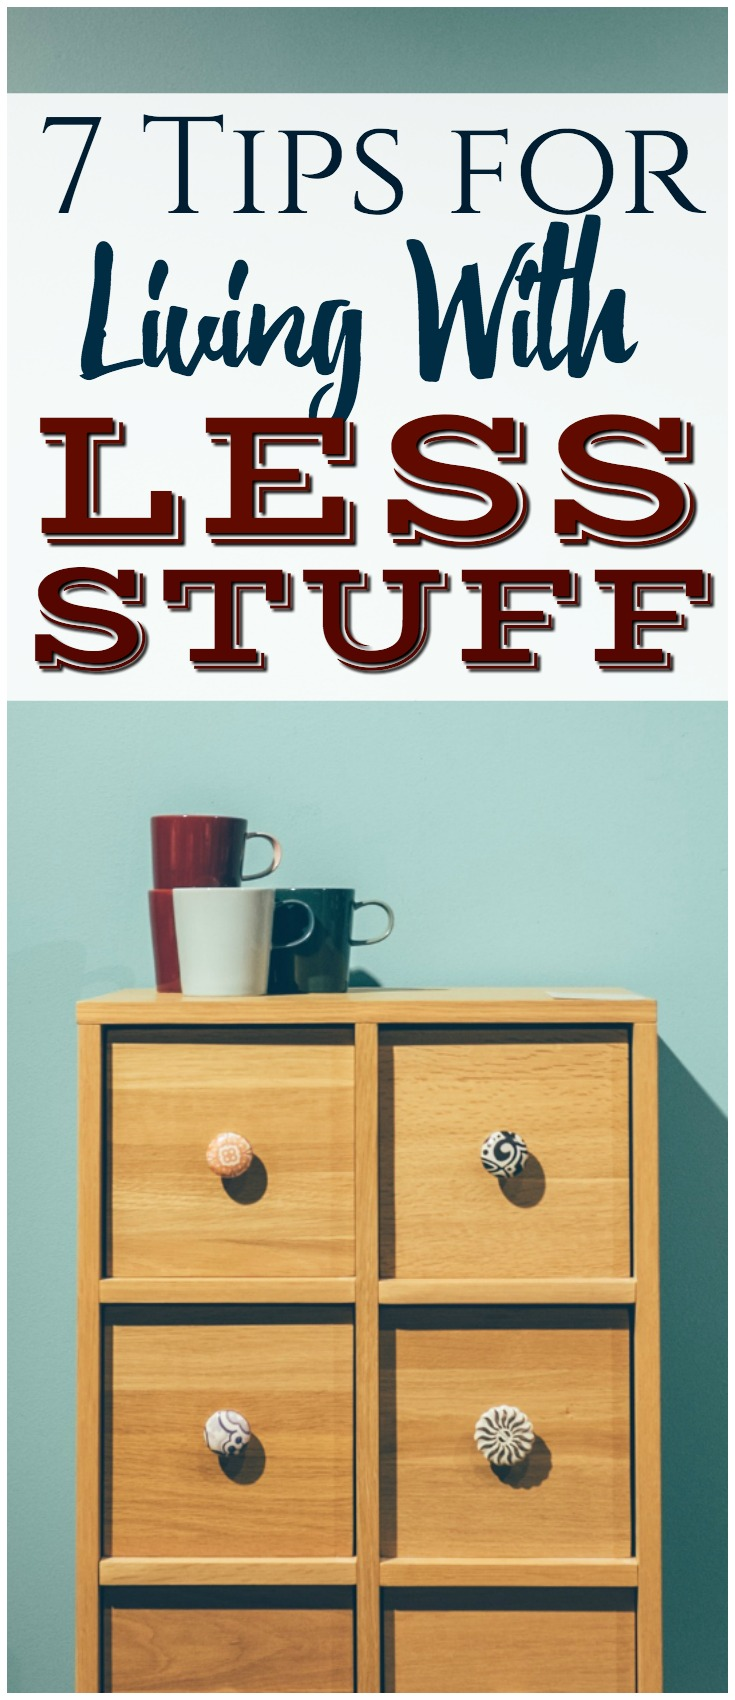 We buy things because we think we need them, we buy things because they are on sale, and we buy things because it feels good. The result is living with a great deal of stuff we don't need and slowly starting to feel overrun by clutter.  Here are 7 tips for living with less stuff.  #materialism #minimalism #money #budget #mindfulness